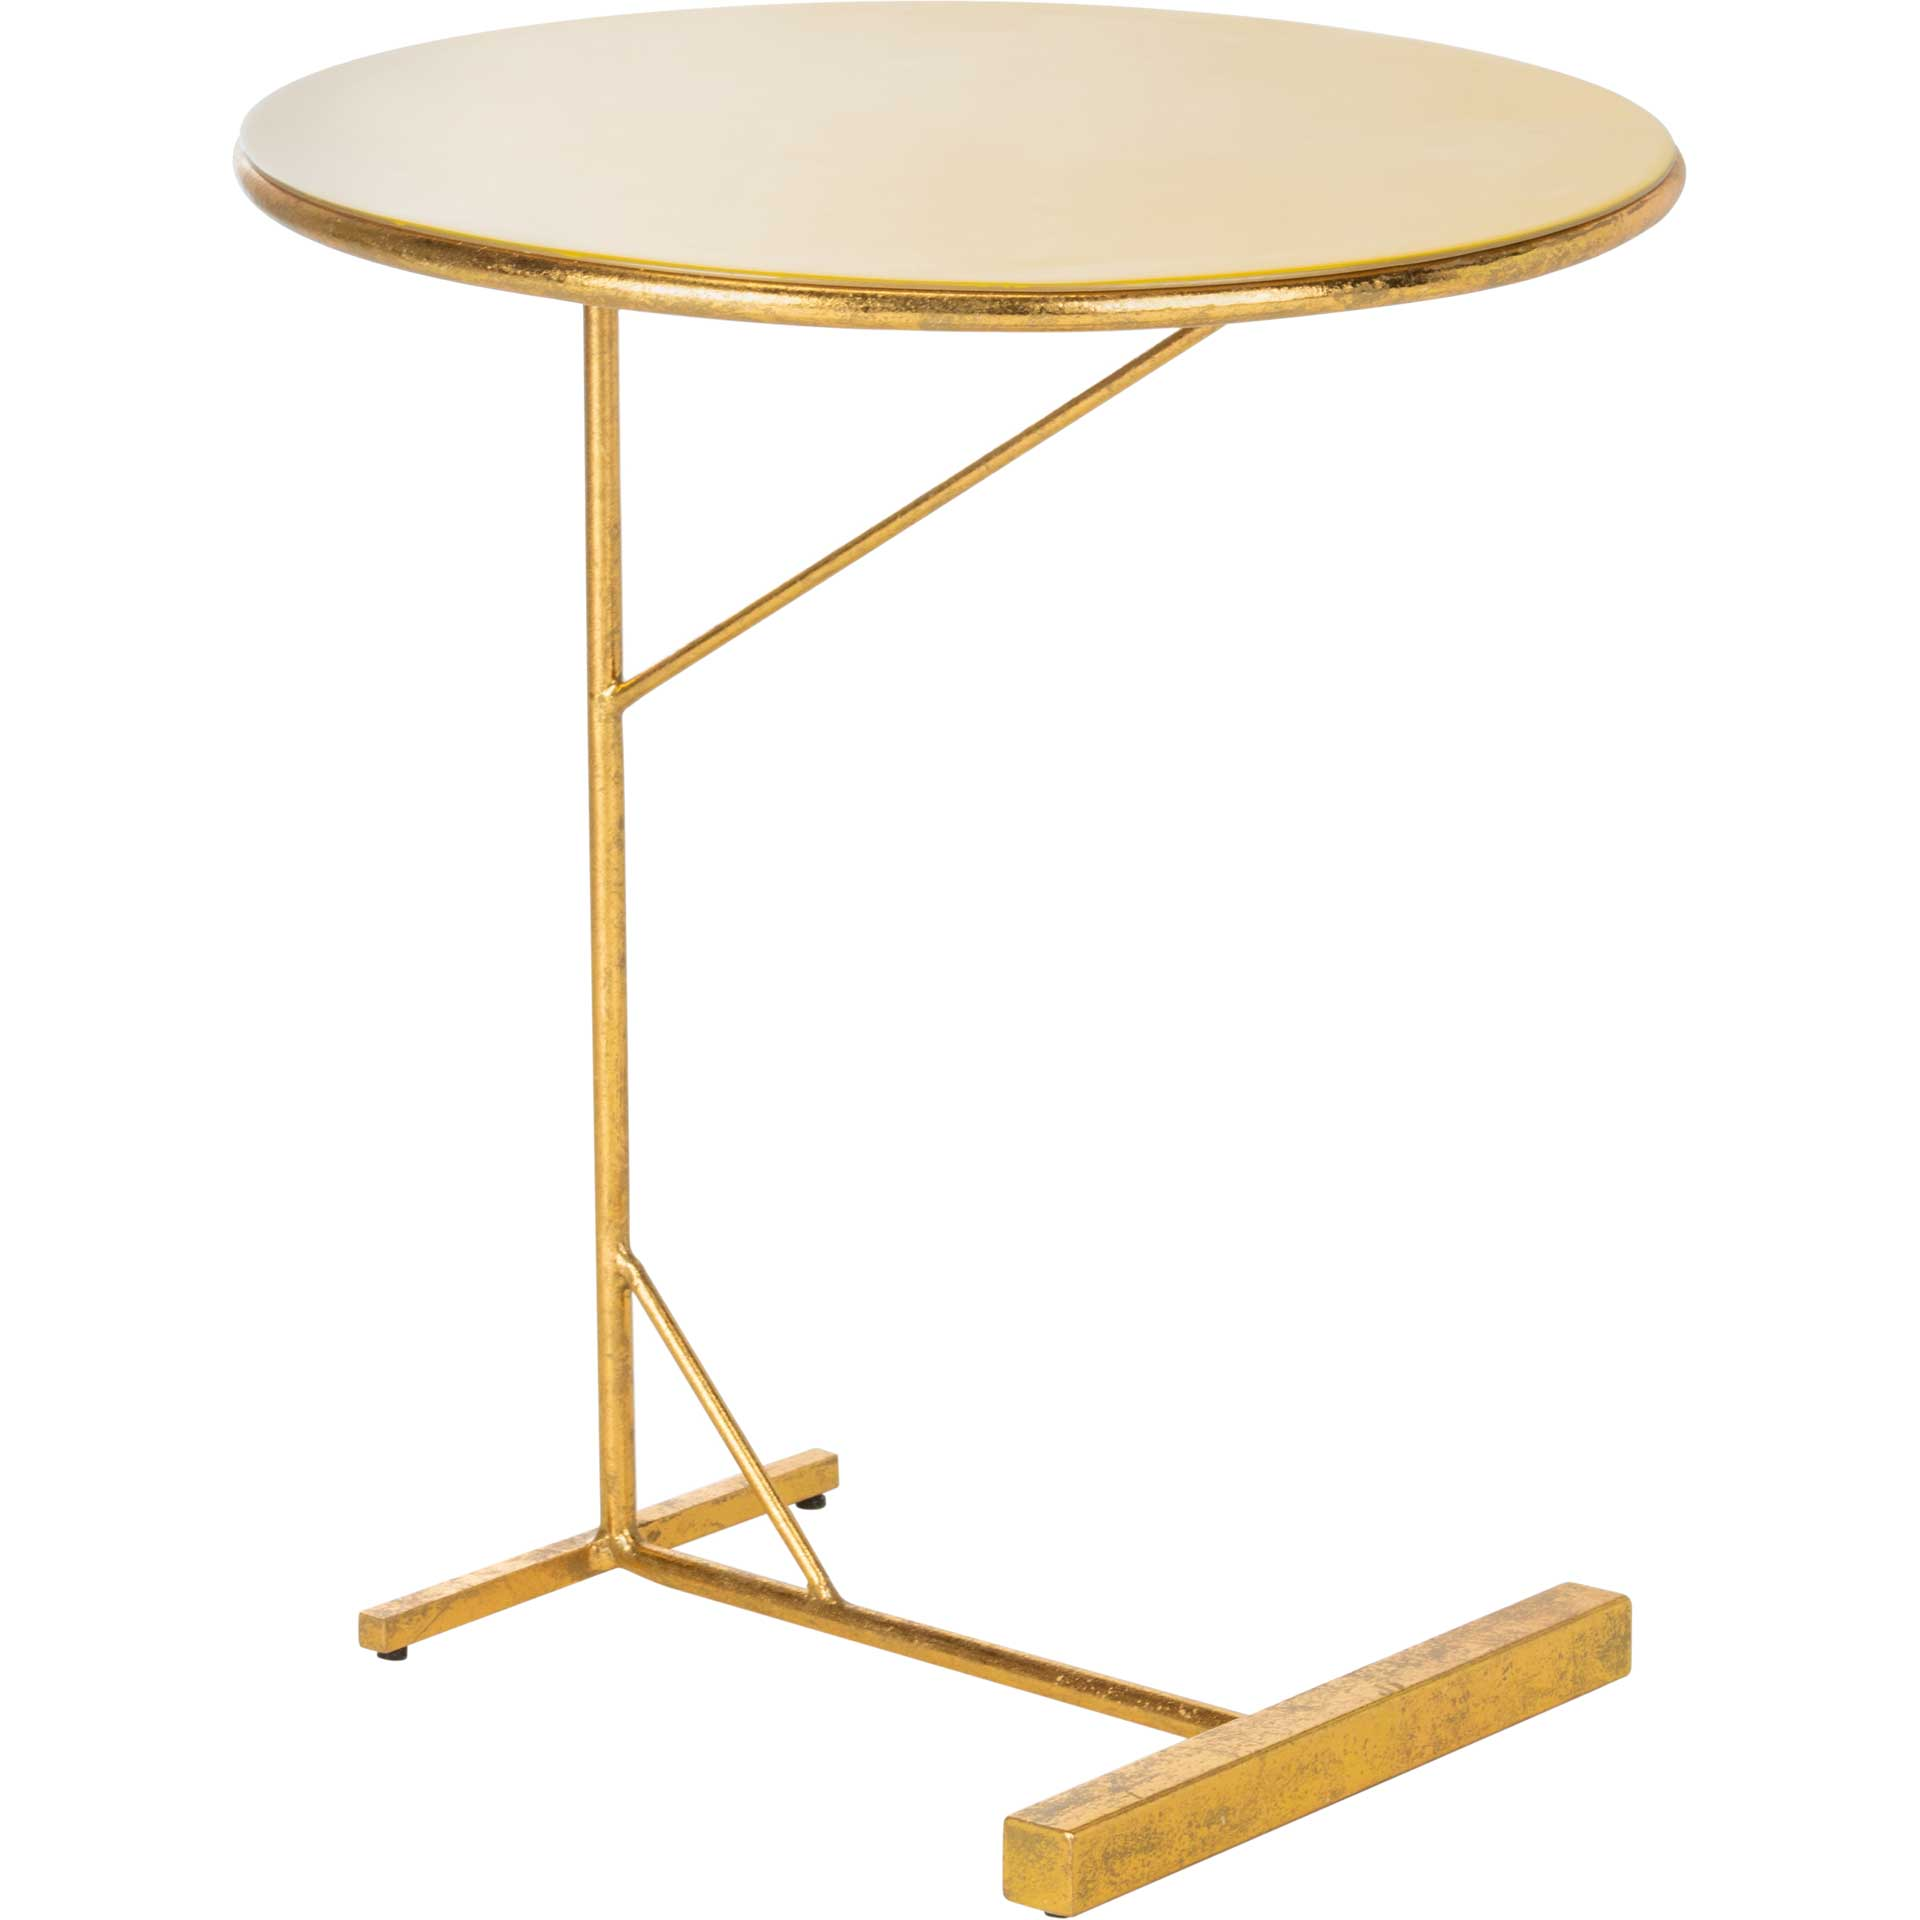 Simona Round C Table Yellow/Gold